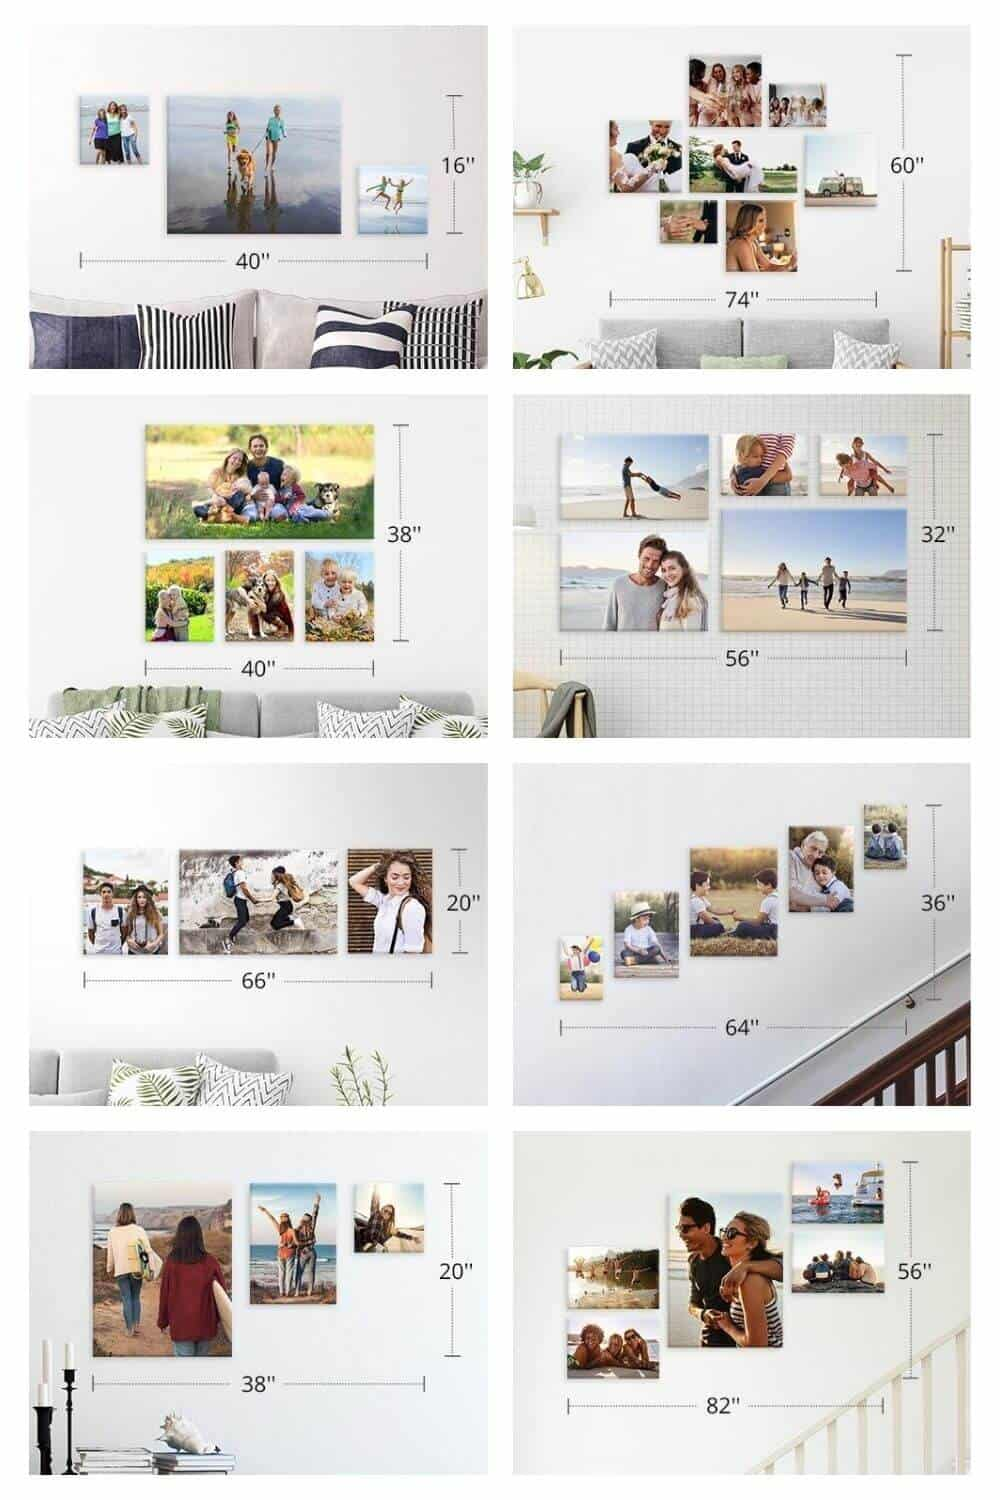 Canvas Print Wall Displays - Several layout examples of multiple canvas prints displayed on various walls